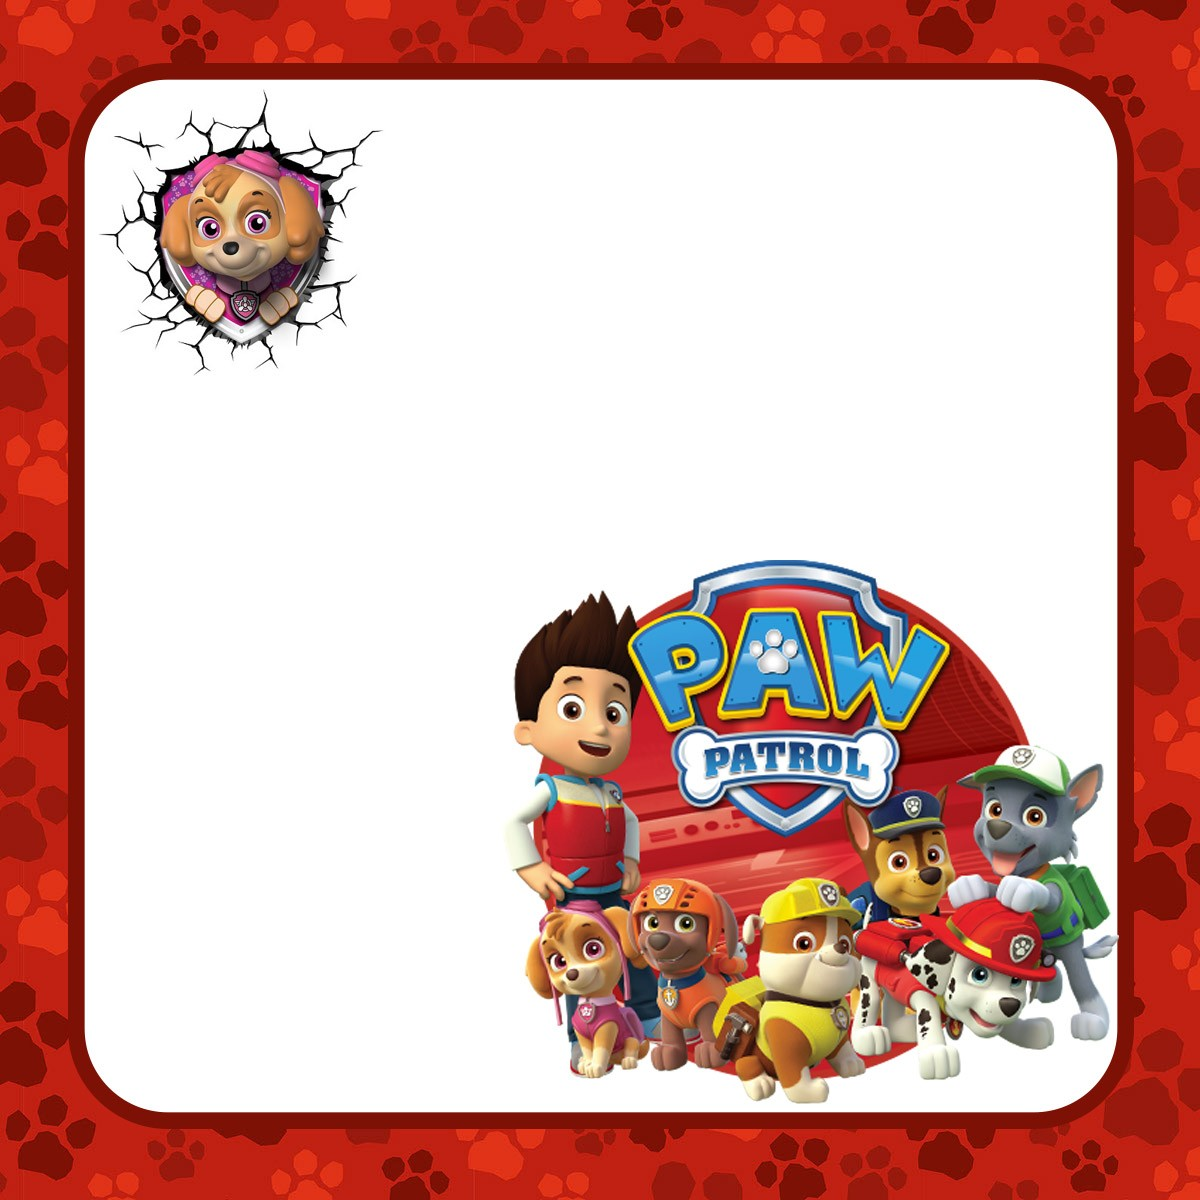 Free Online Paw Patrol Birthday Invitation Invitations Online - Paw patrol invitation template